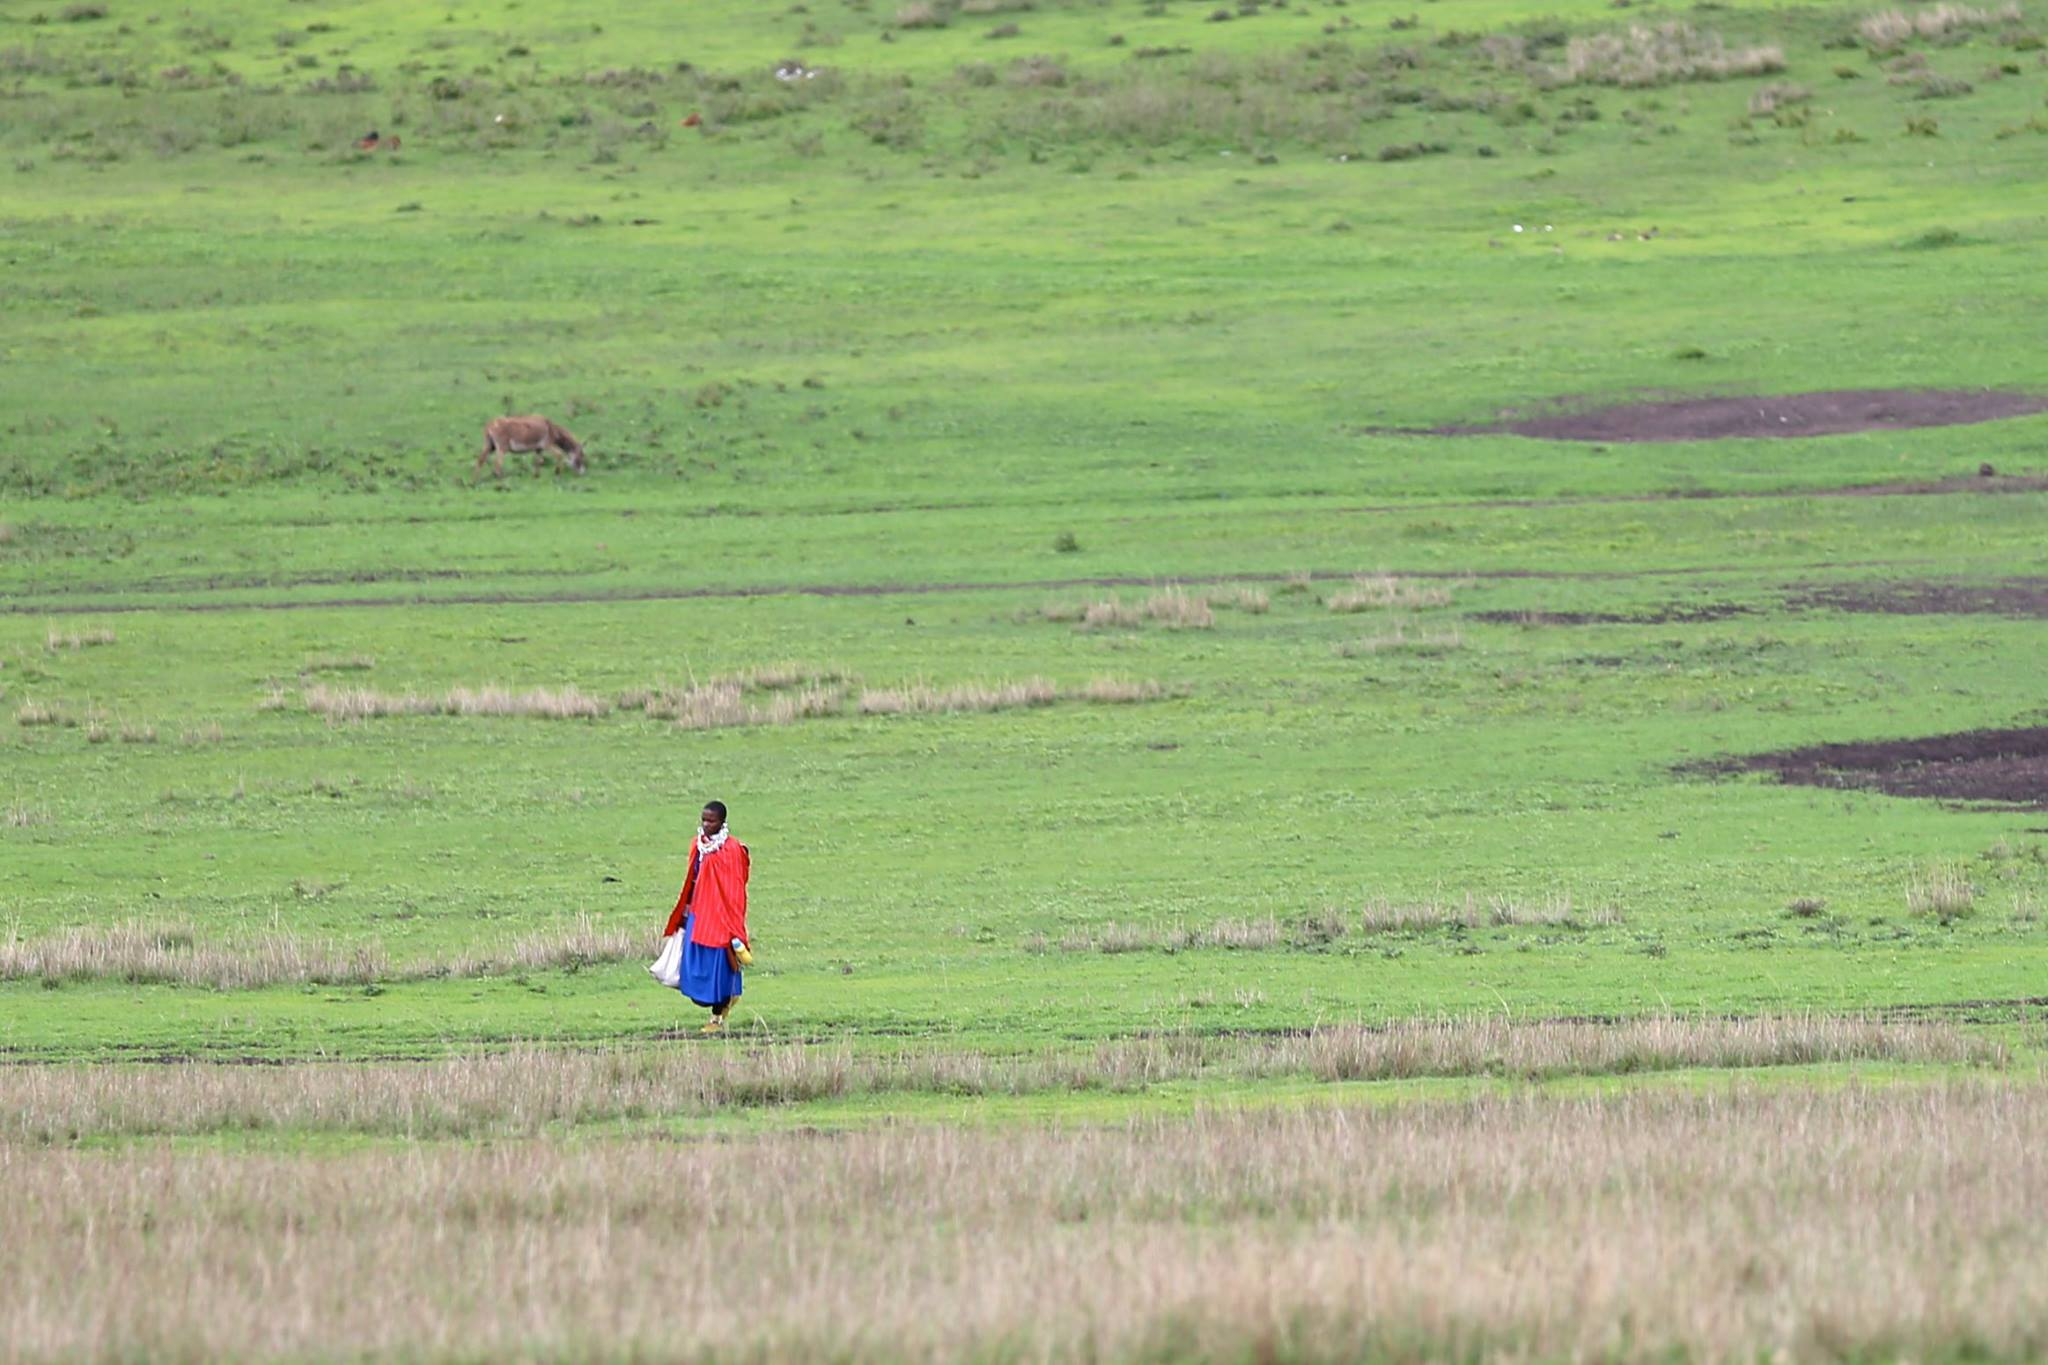 Masai tribes-person in the Serengeti photo by Brandy Little